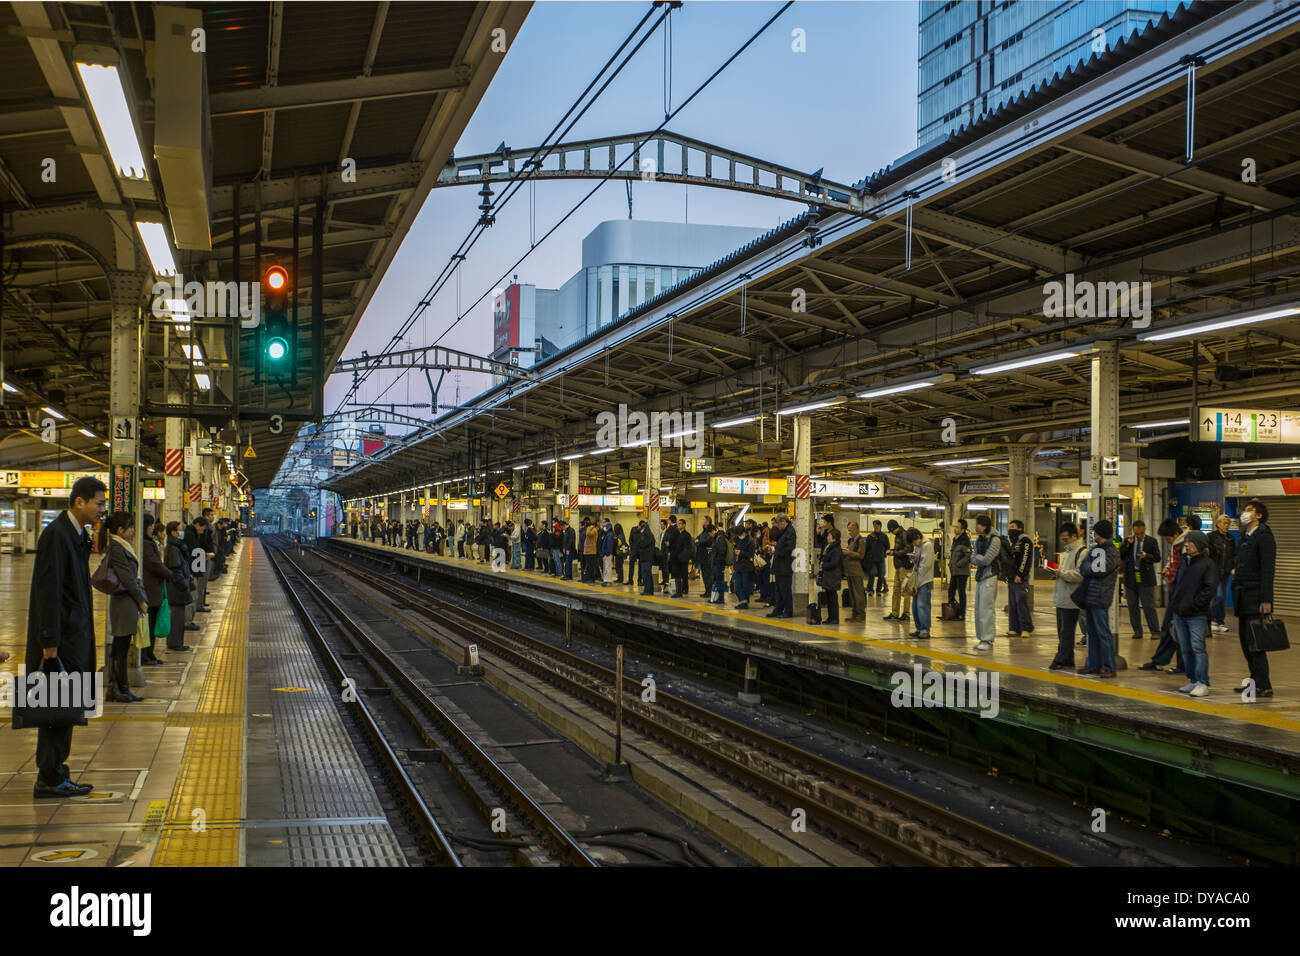 Japan, Asia, Tokyo, Akihabara, city, commute, rush hour, people, early, morning, order, station, train, waiting, work - Stock Image